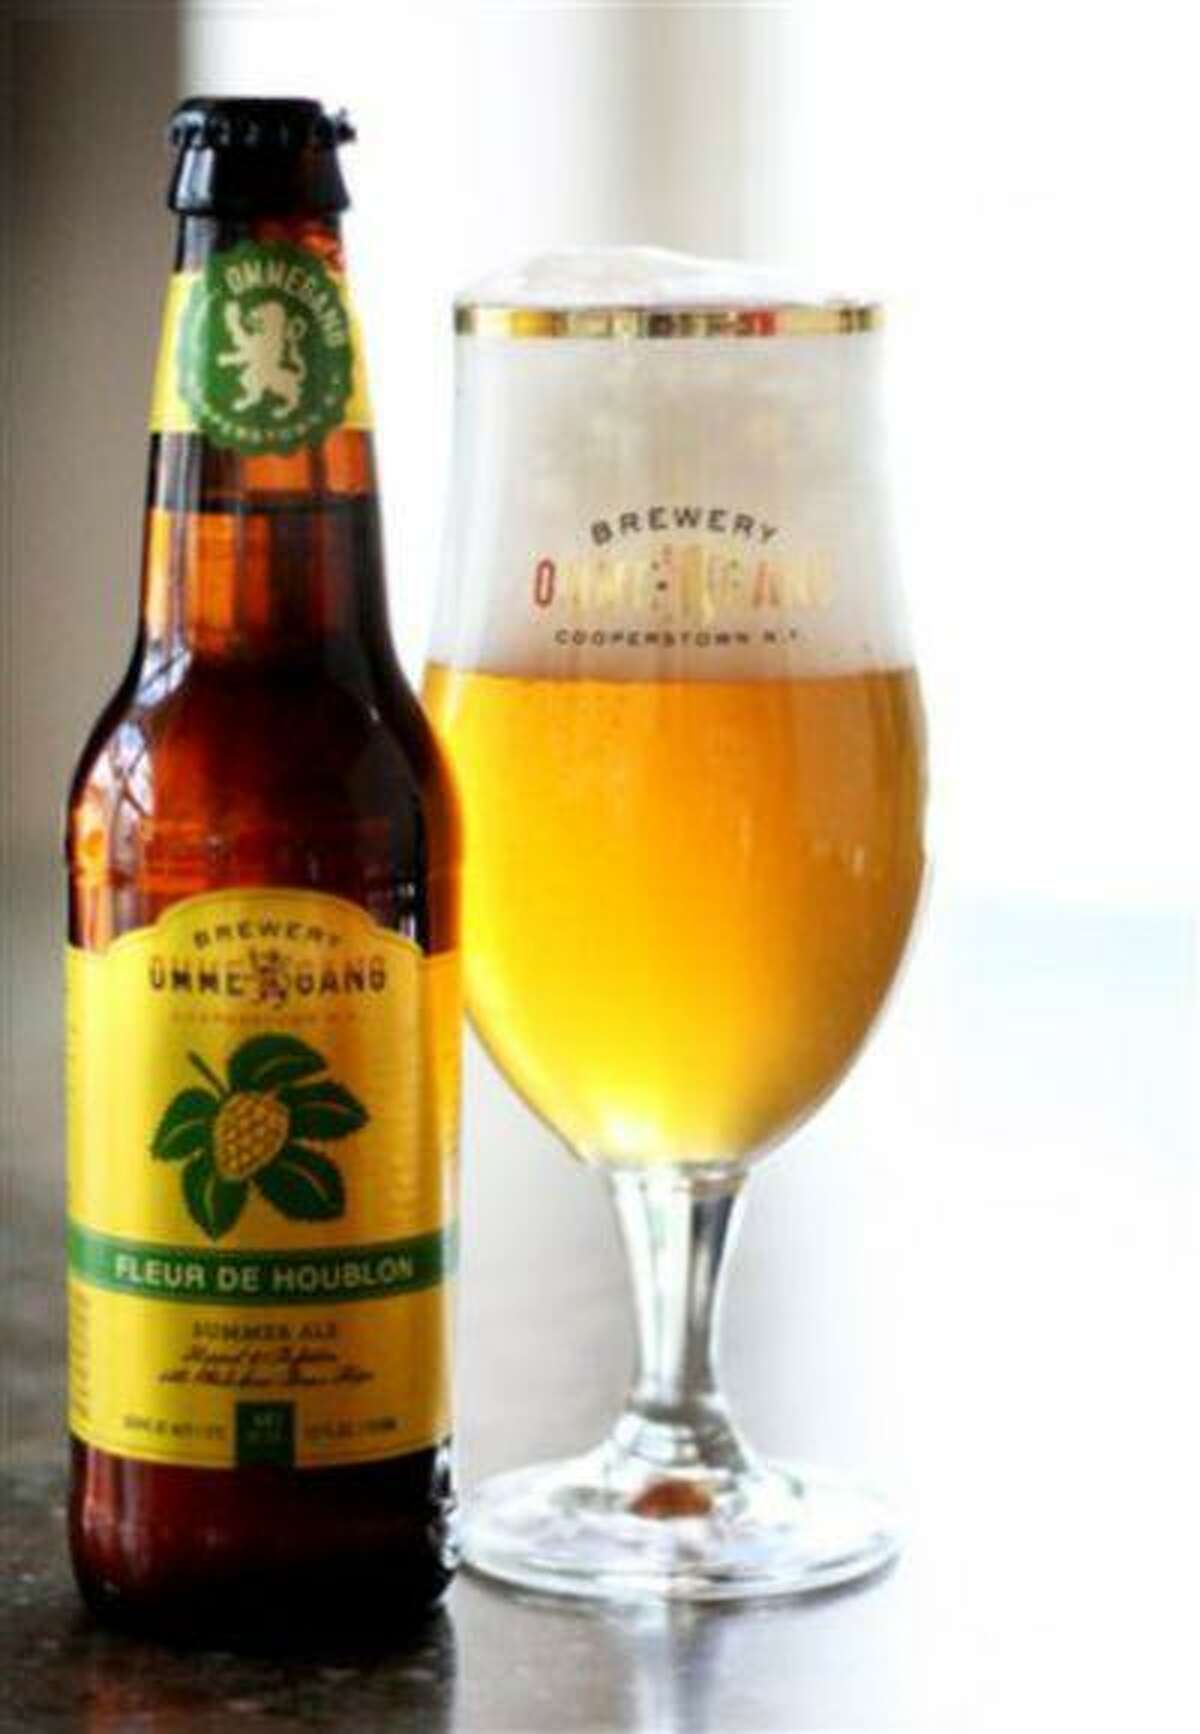 This undated publicity photo provided by Brewery Ommegang/Duvel Moortgat USA, shows a bottle and glass of Fleur de Houblon summer ale. (AP Photo/Brewery Ommegang/Duvel Moortgat USA)